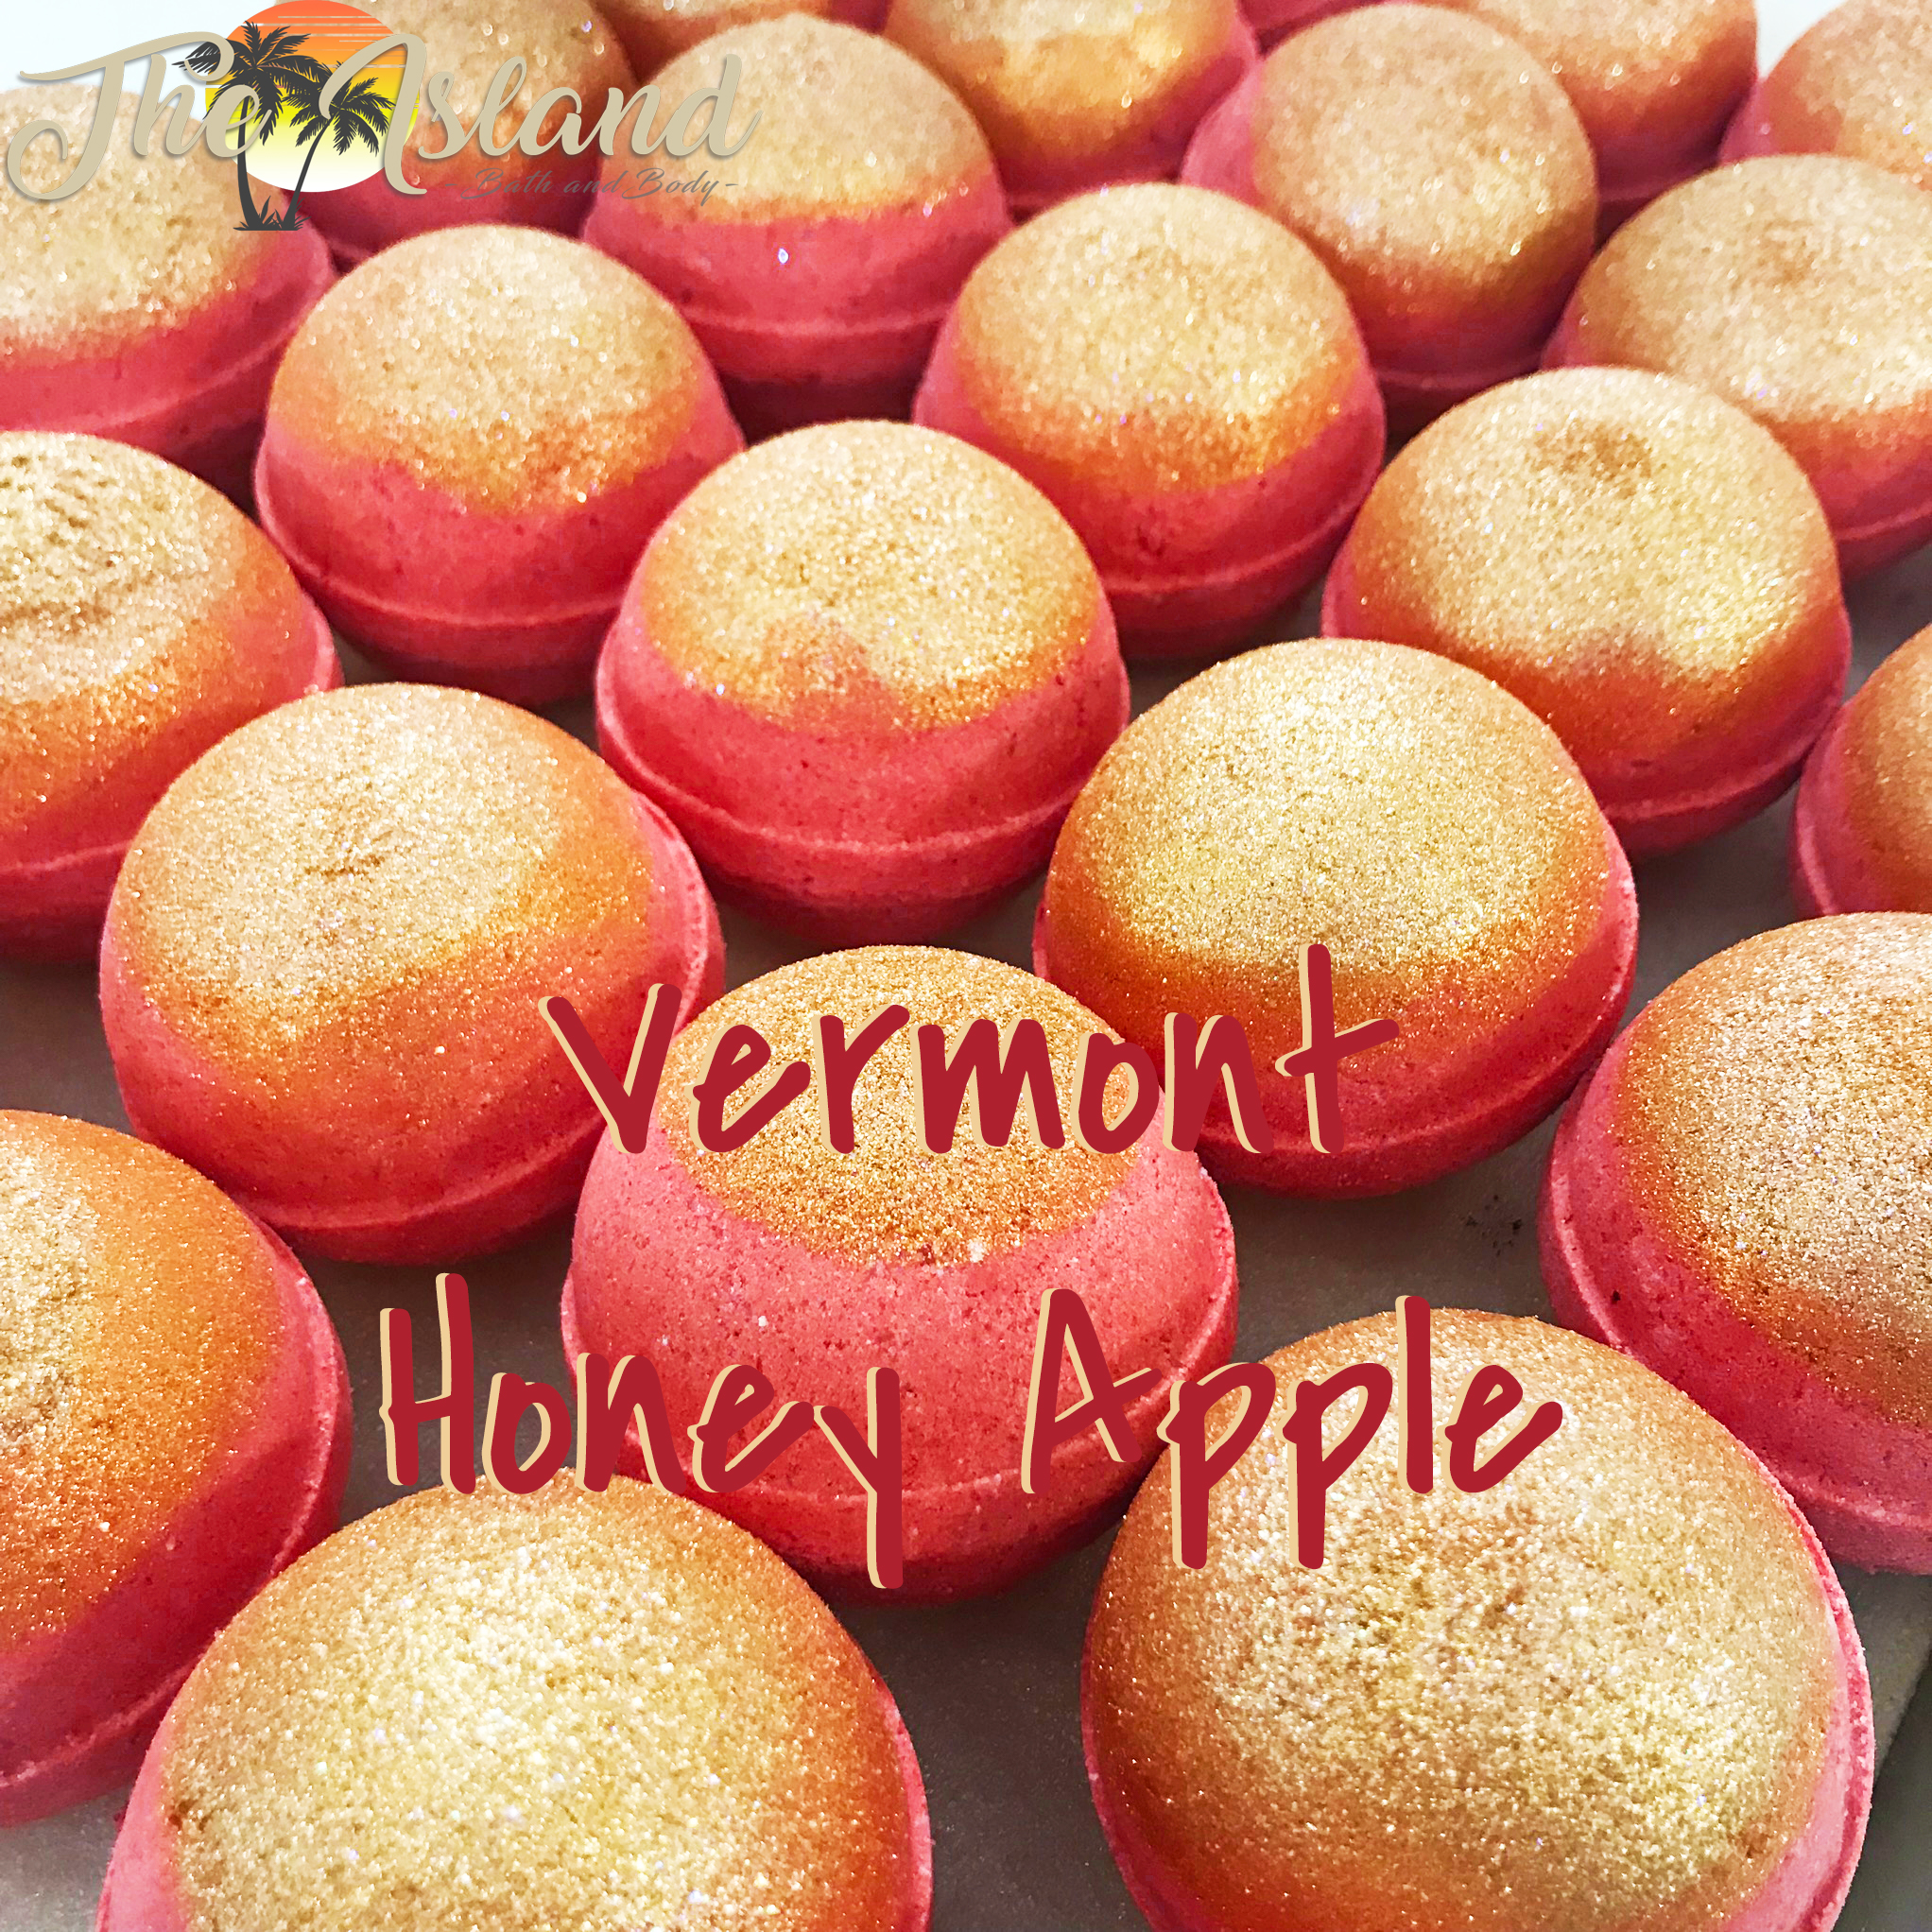 Vermont Honey Apple 2oz Bath Bombs